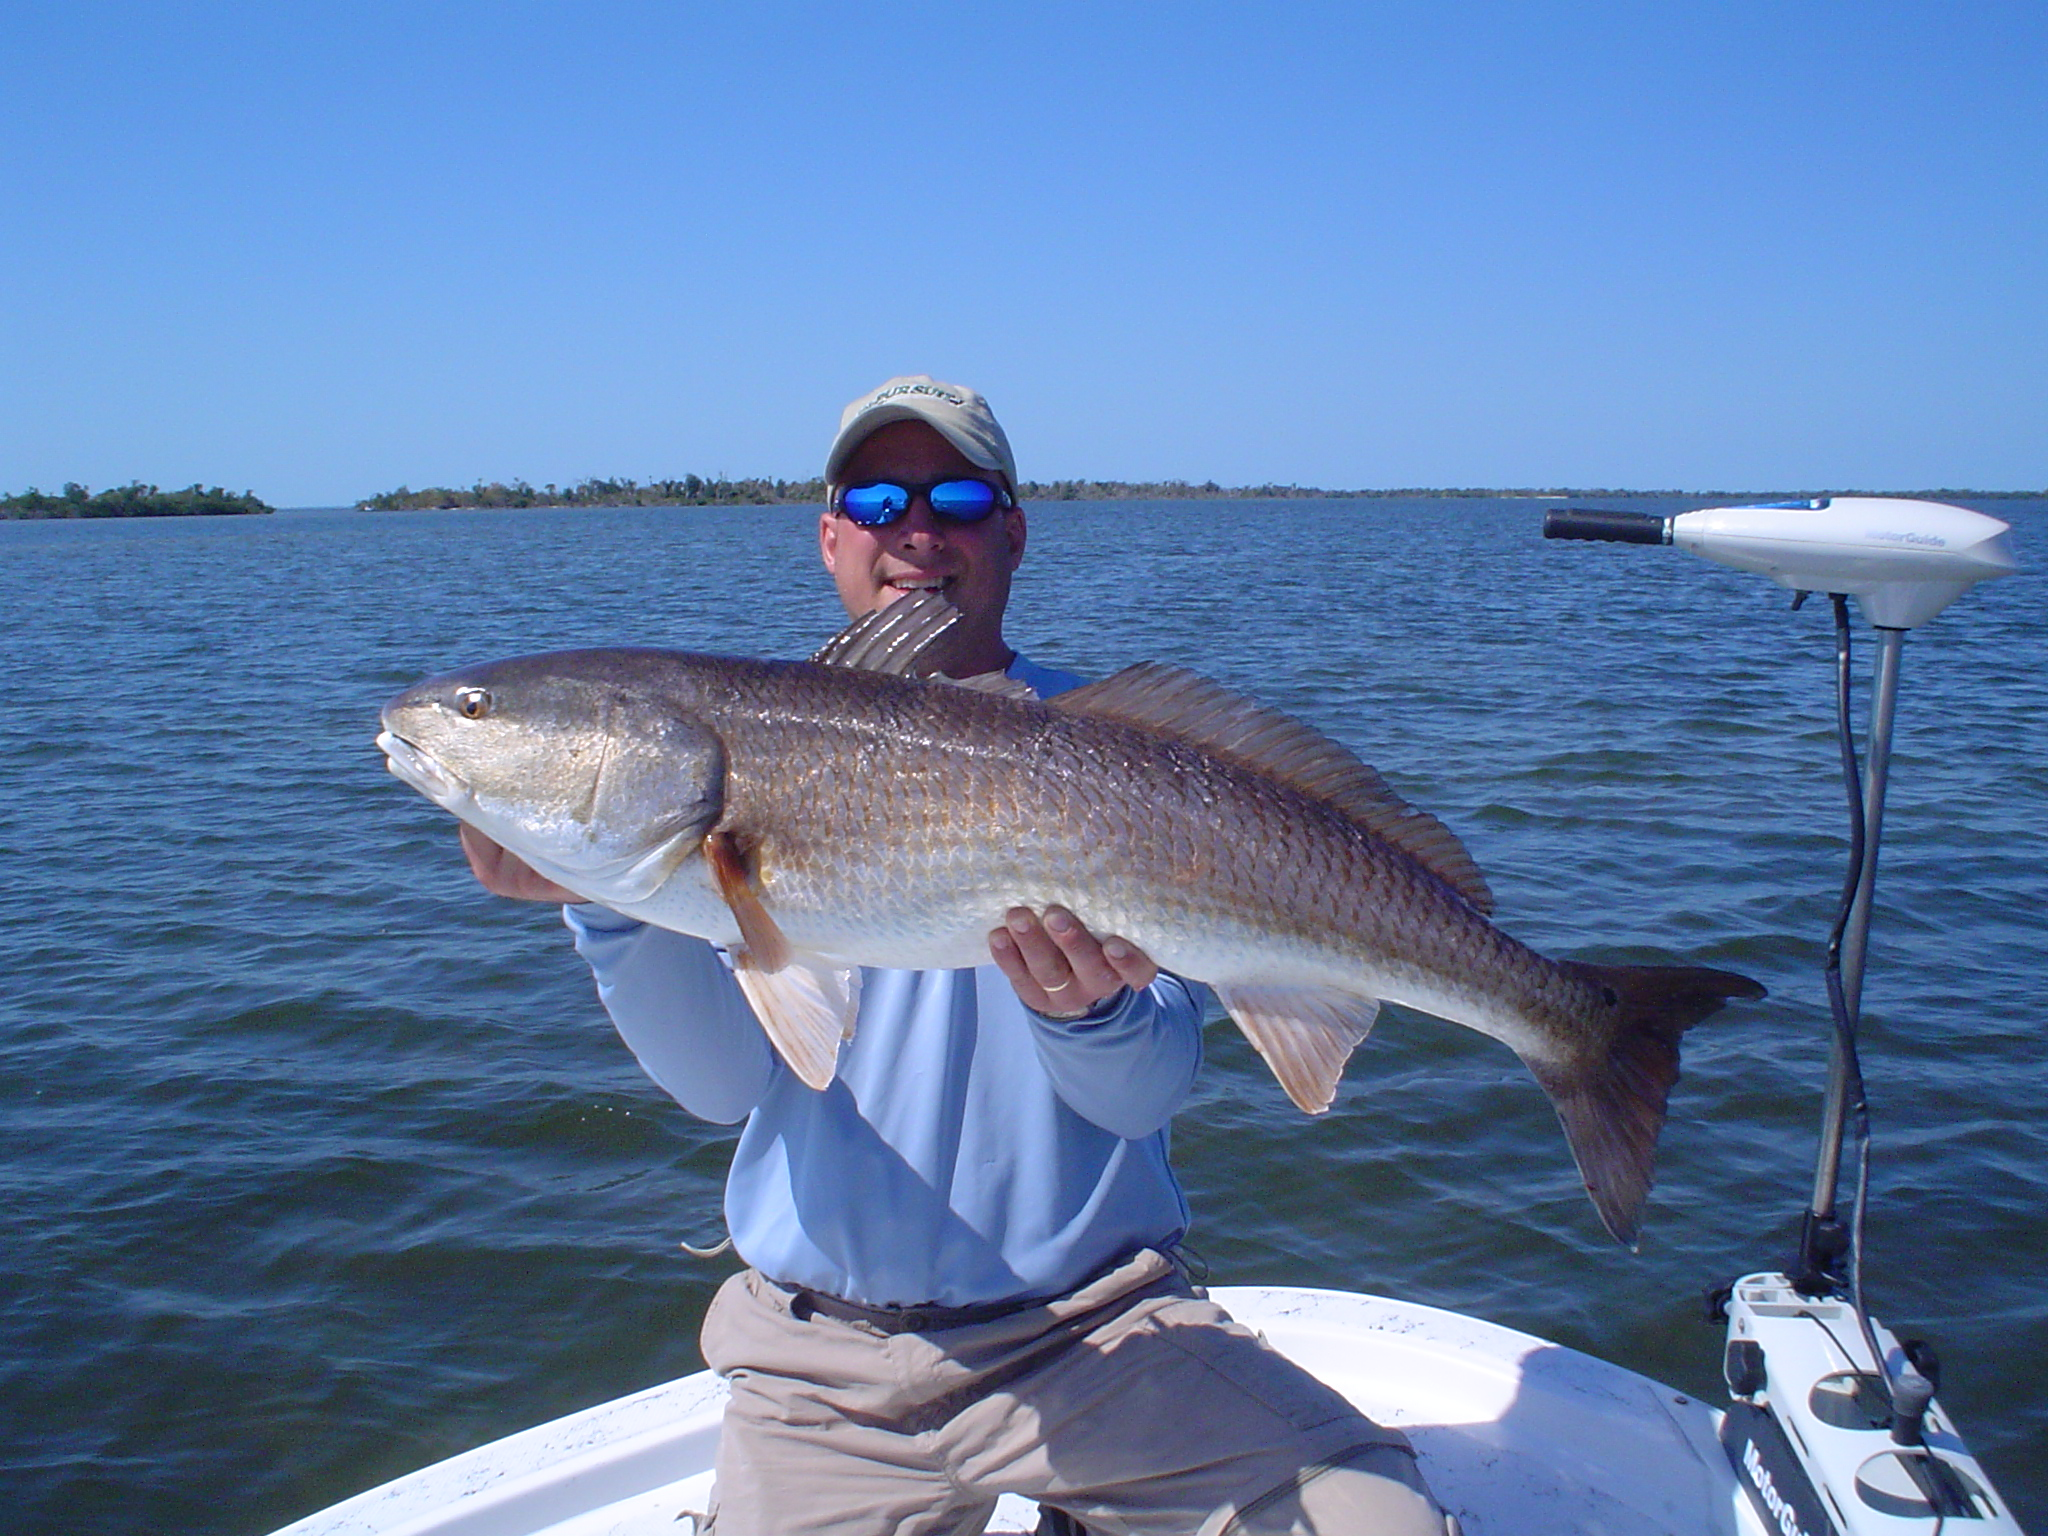 Flats fishing for redfish in Charlotte Harbor